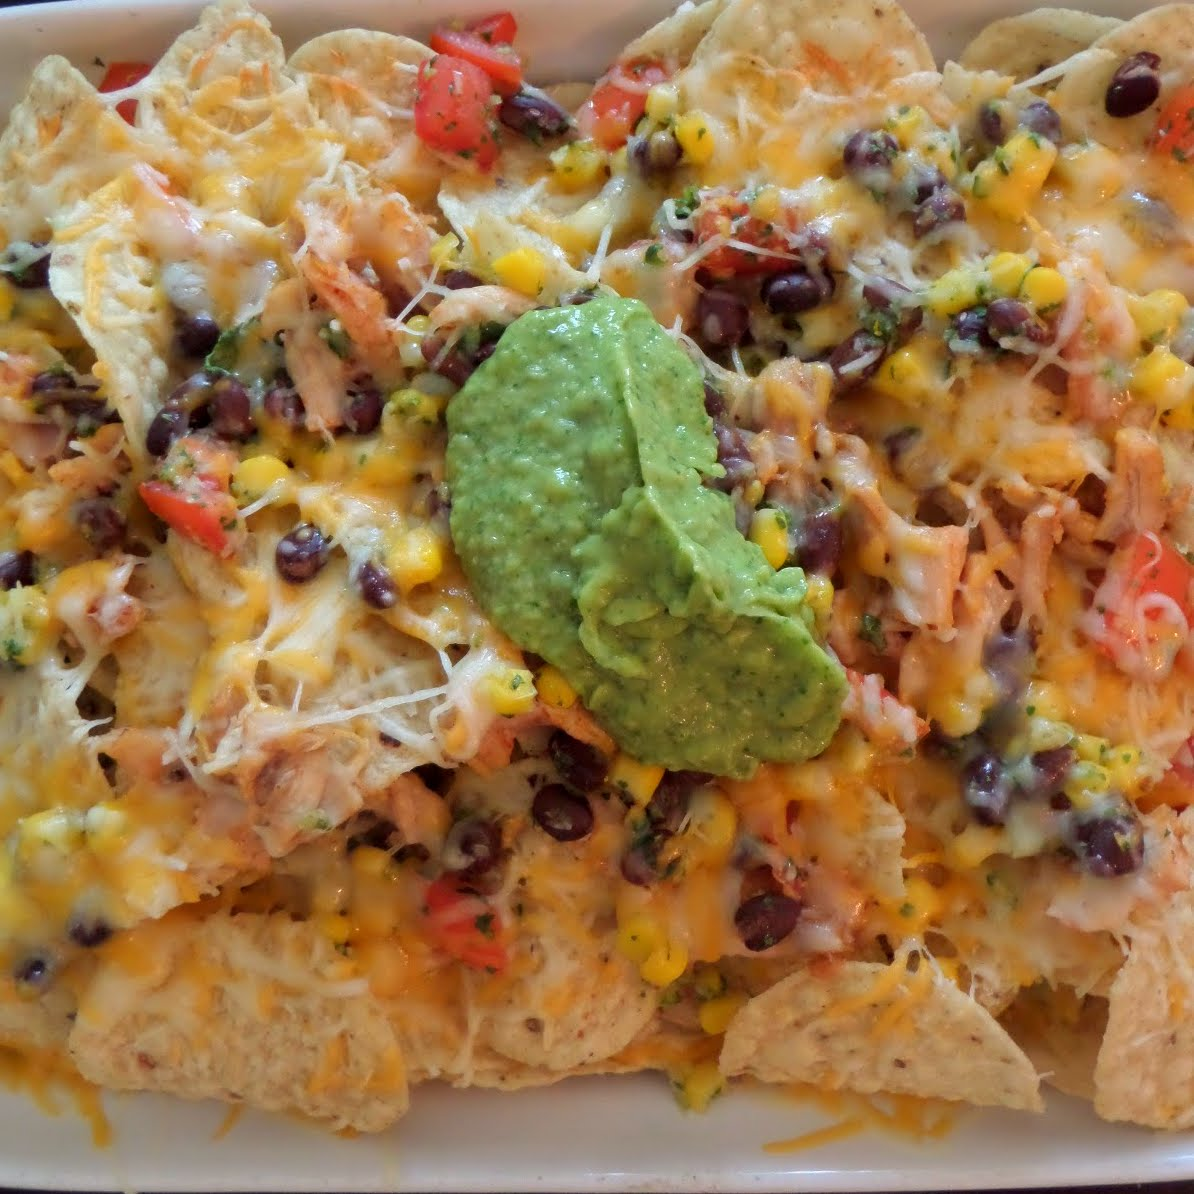 Chicken and Black Bean Salsa Nachos:  Crunchy tortilla chips layered with leftover rotisserie chicken, black bean and corn salsa, and shredded cheese.